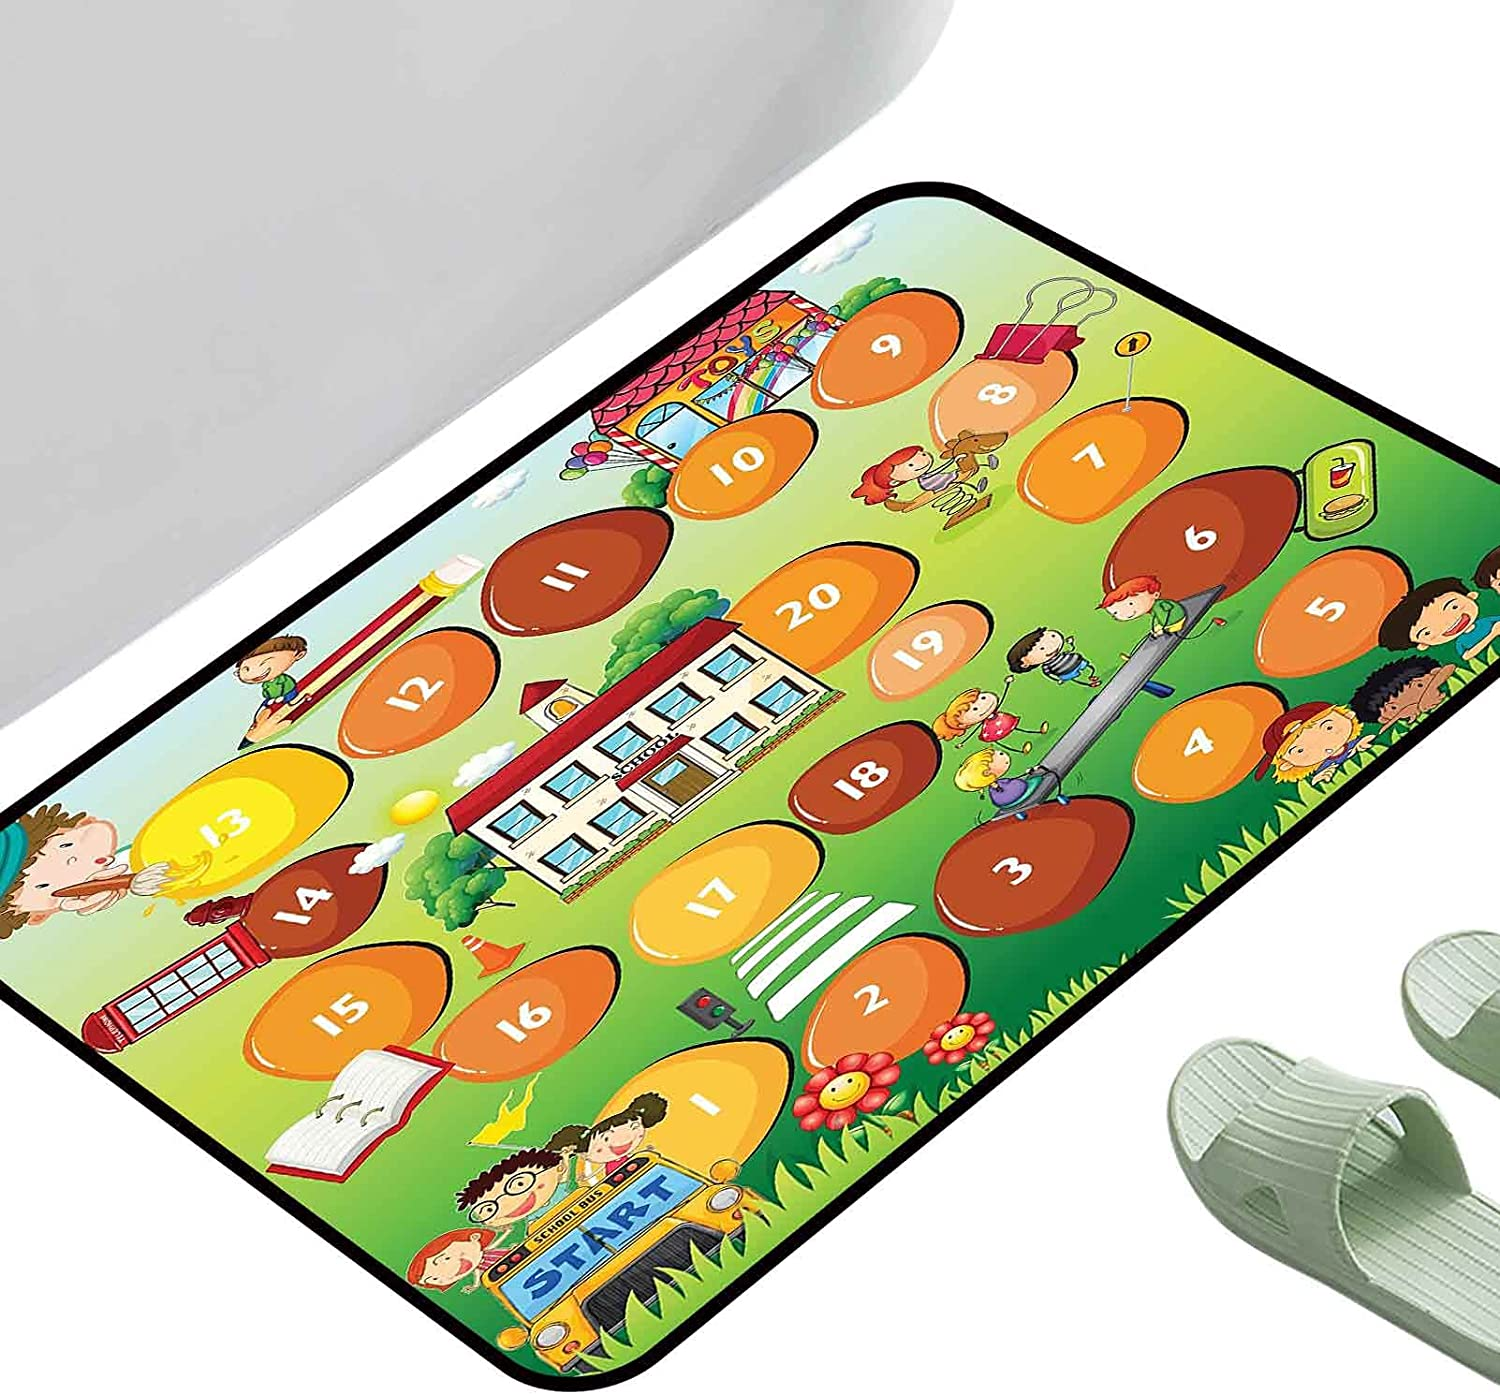 Kids half Bedroom Mats Decorative Activity on ing Tim Complete Free Shipping School The